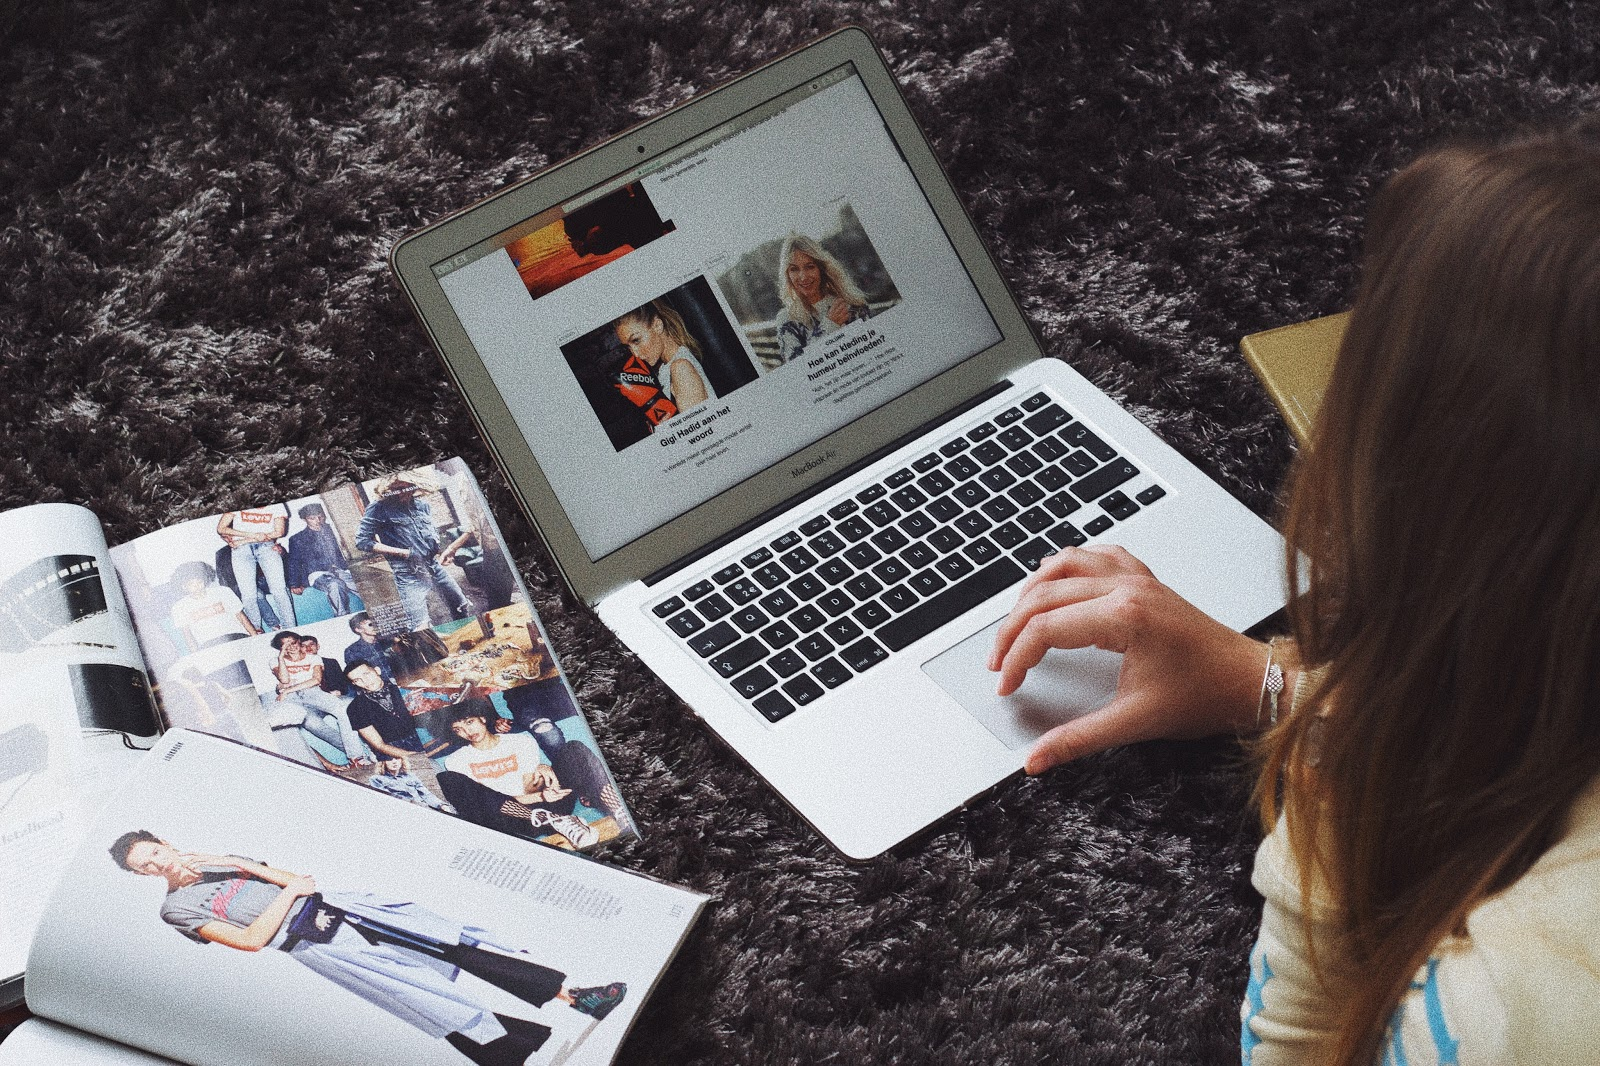 fashion blogger dominique candido on her laptop mac book looking at zalando editorial page